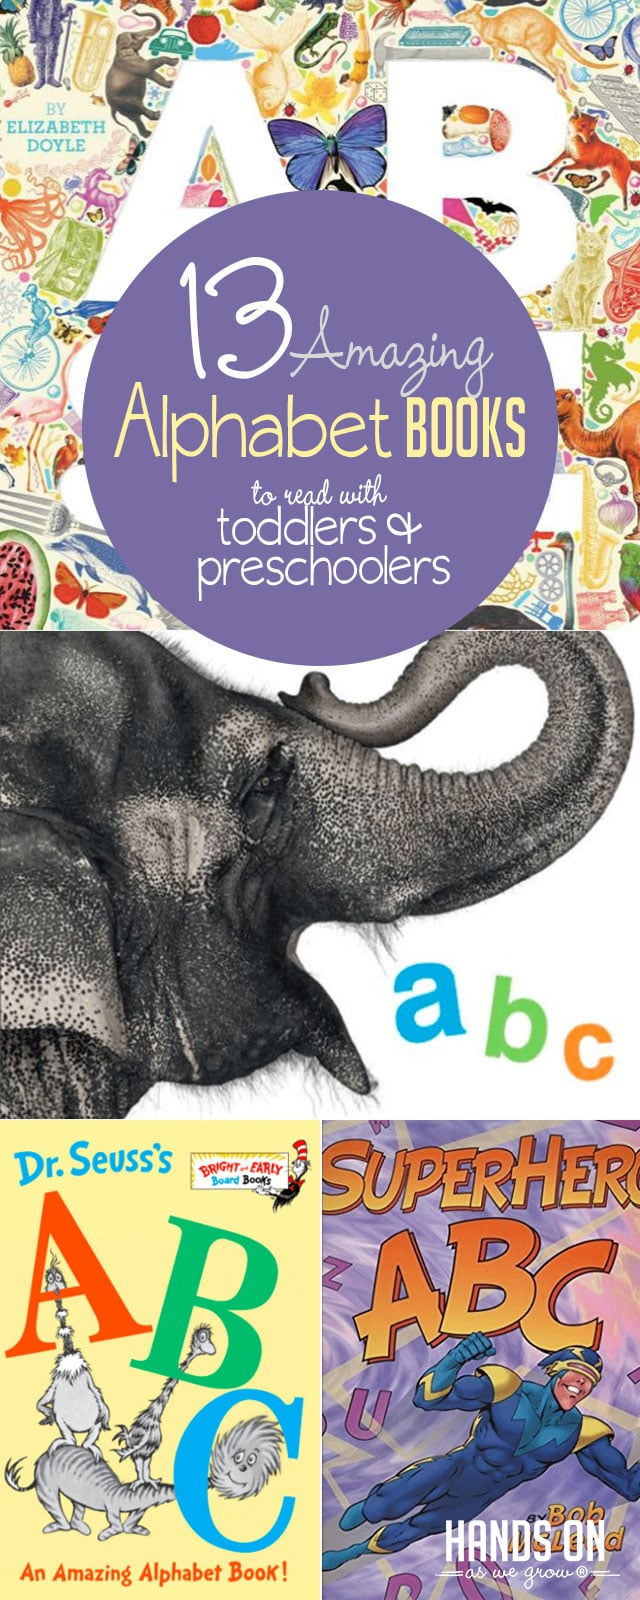 Explore the alphabet when you read one of these 13 awesome alphabet books, picked for Hands On As We Grow readers by The Library Mom!